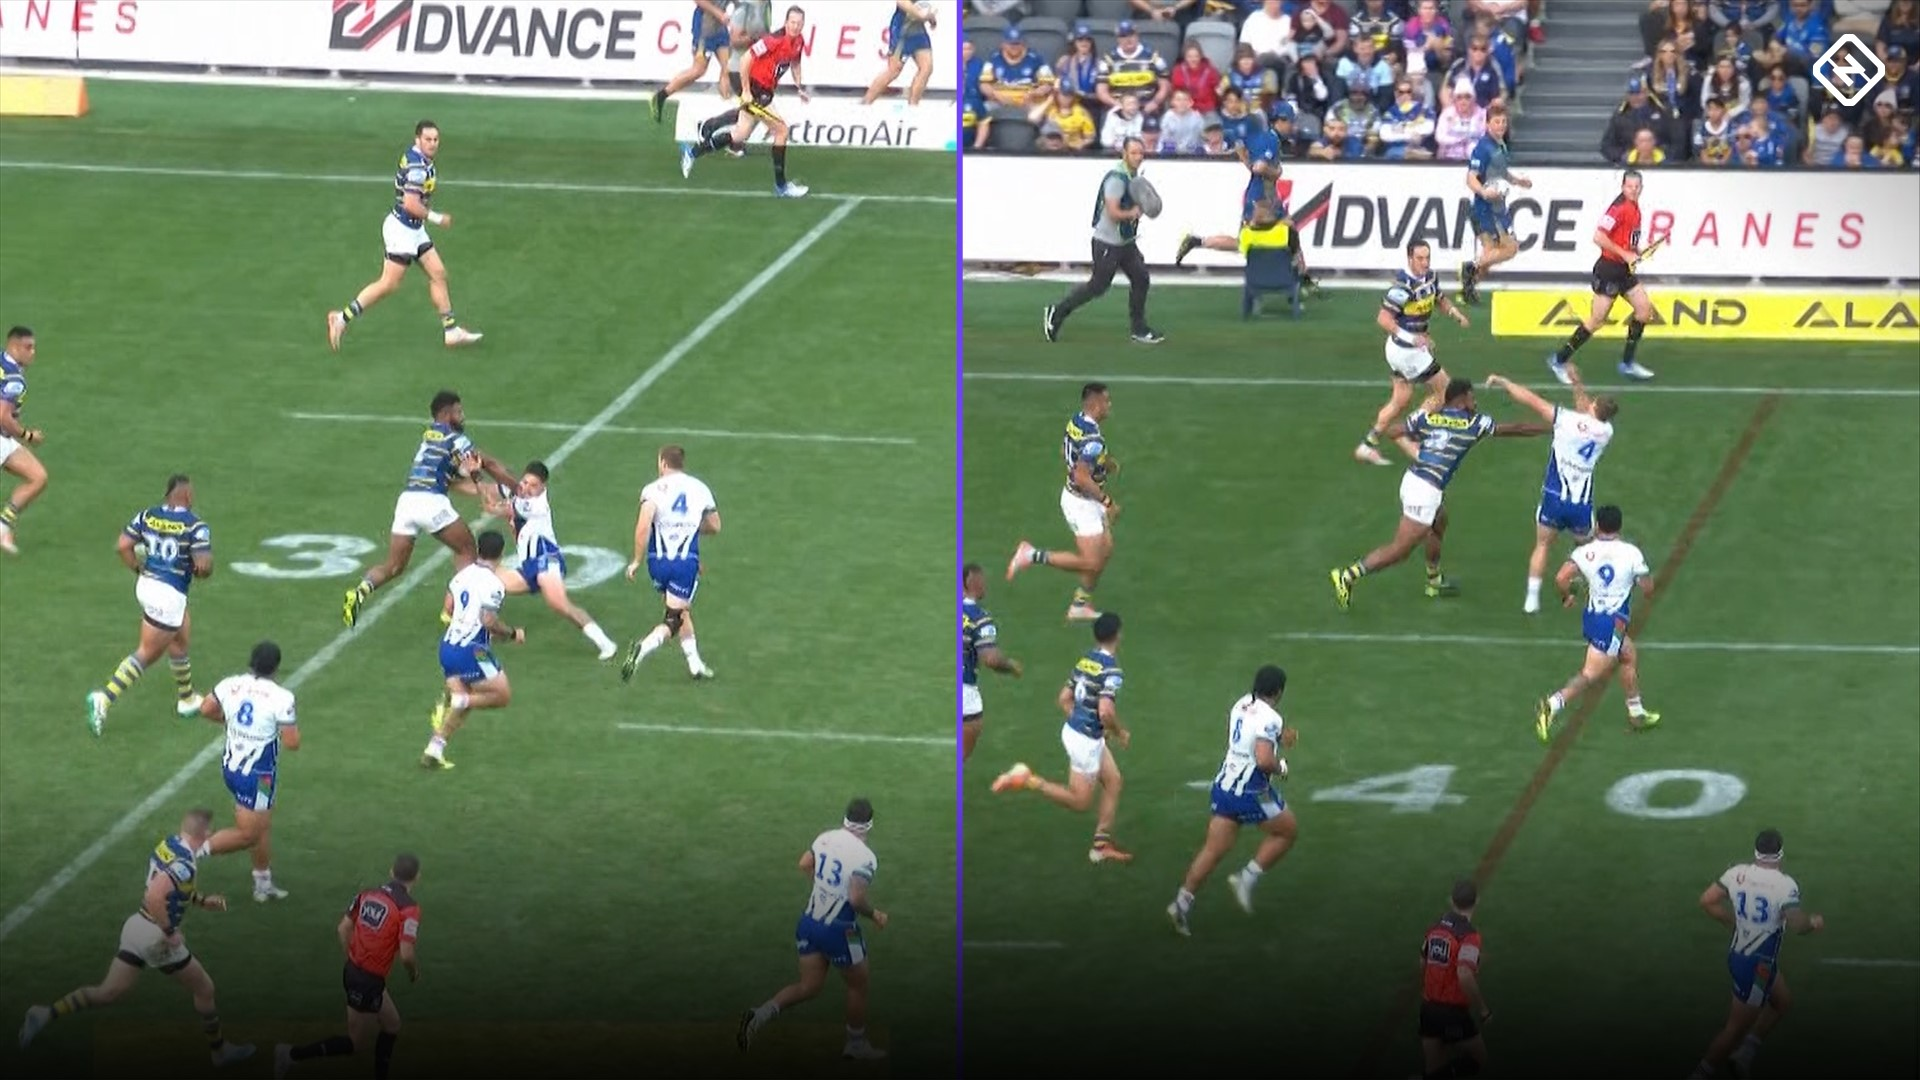 Eels v Warriors: Barnstorming run from Maika Sivo leads to incredible team try